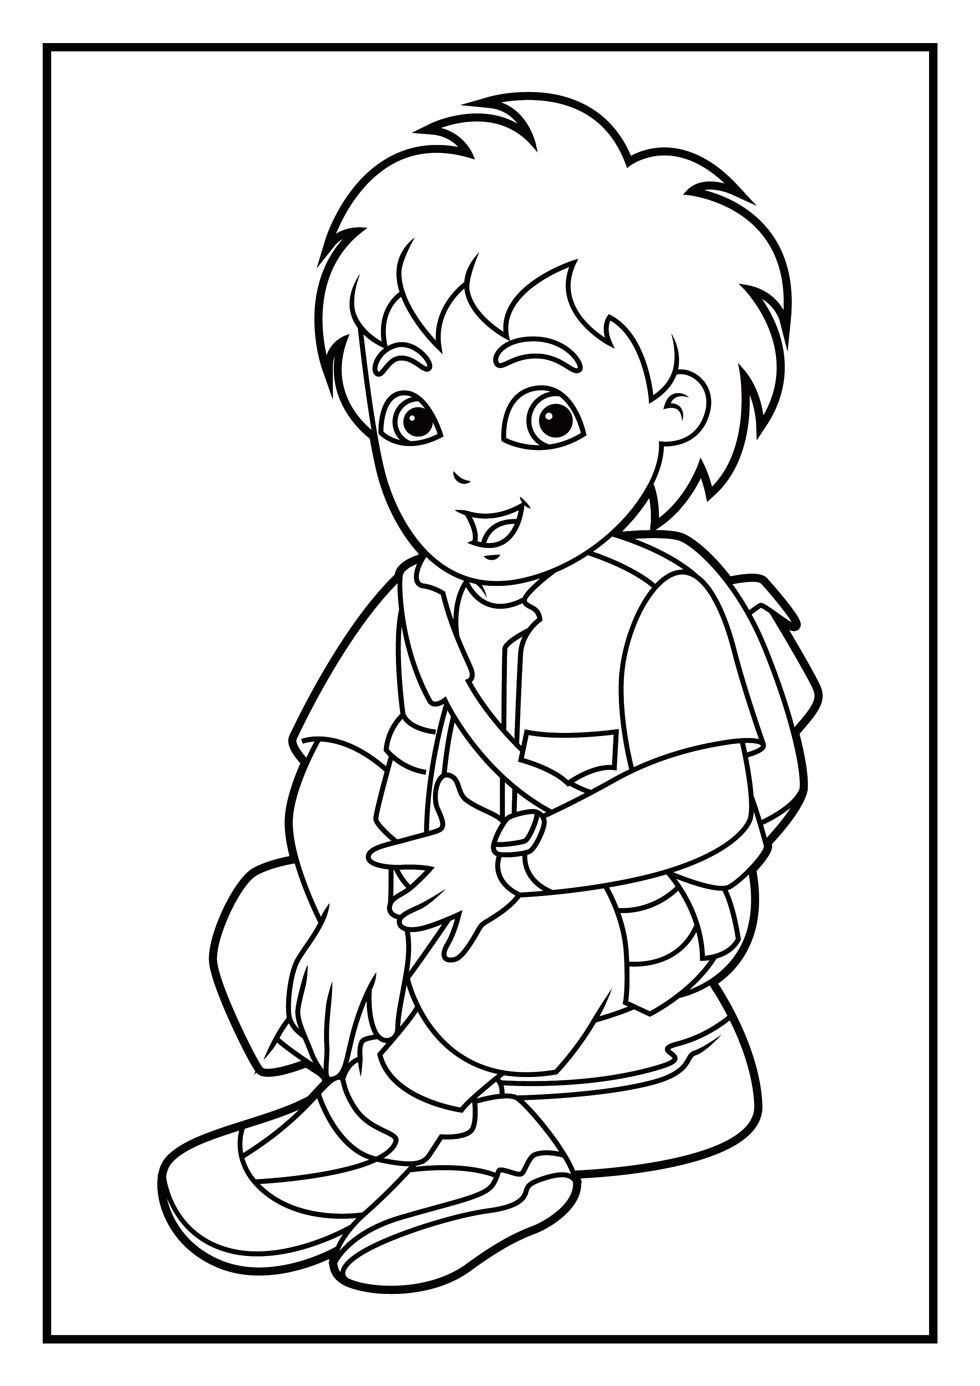 14 diego coloring page to print print color craft